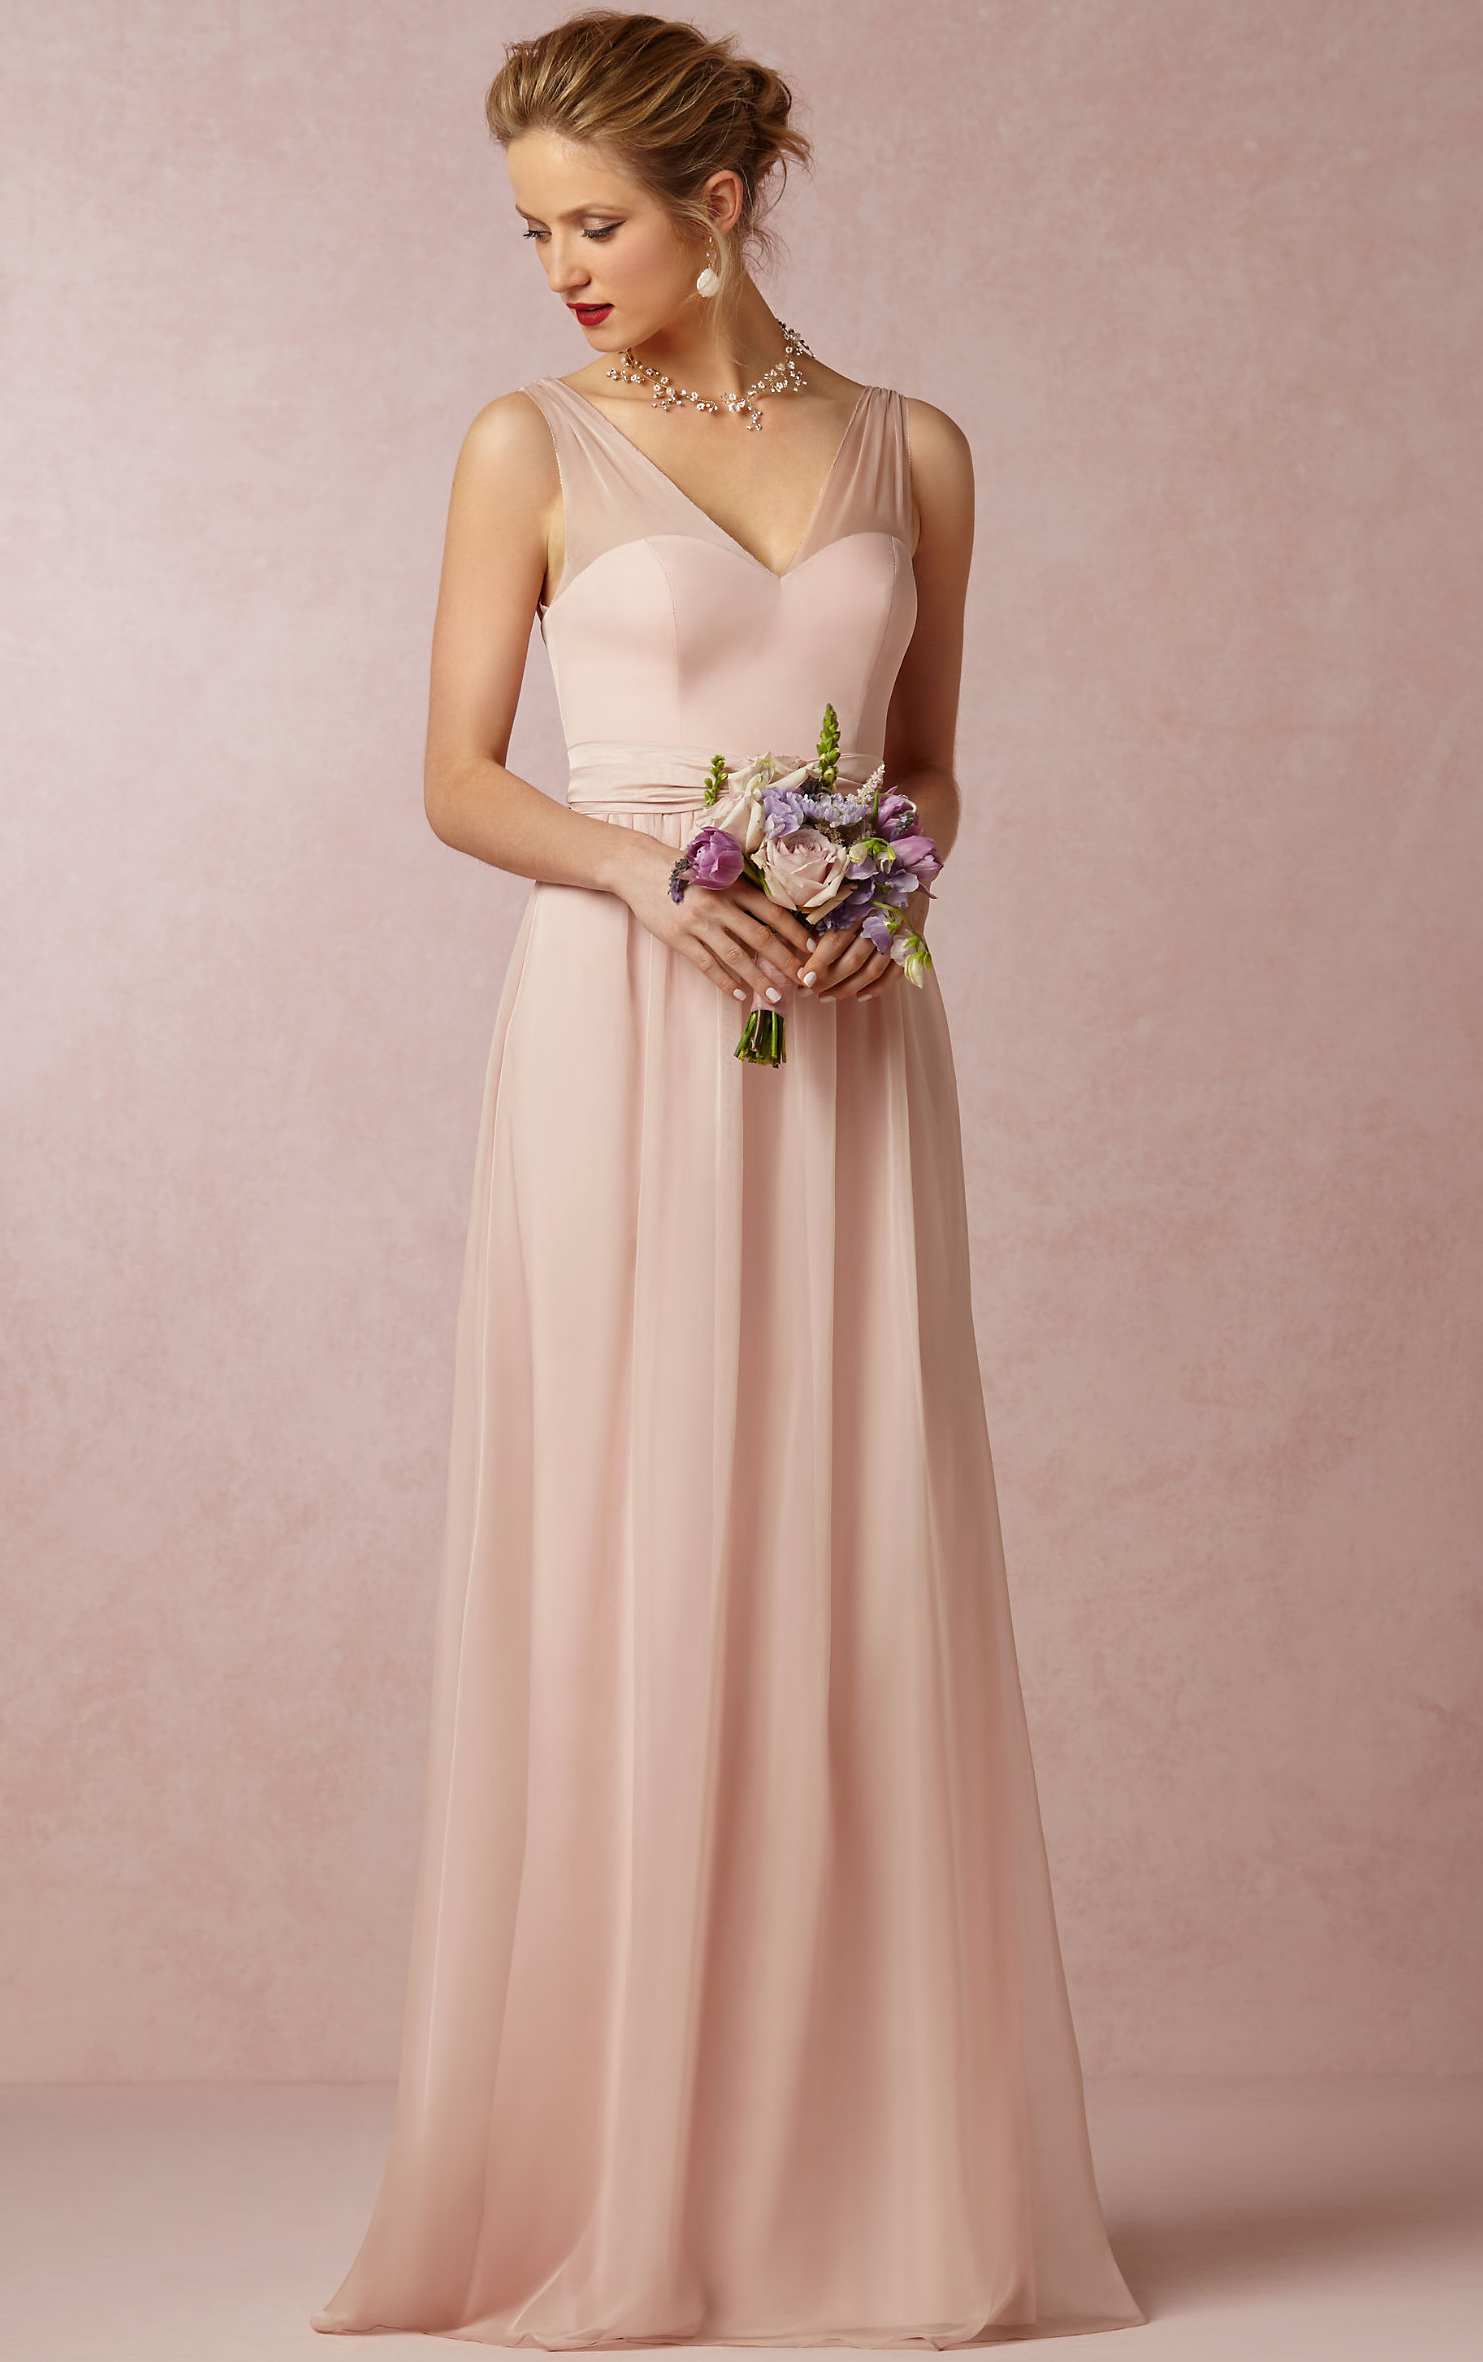 Enchanting Bridesmaid Dresses Sale Uk Sketch - Wedding Dress Ideas ...